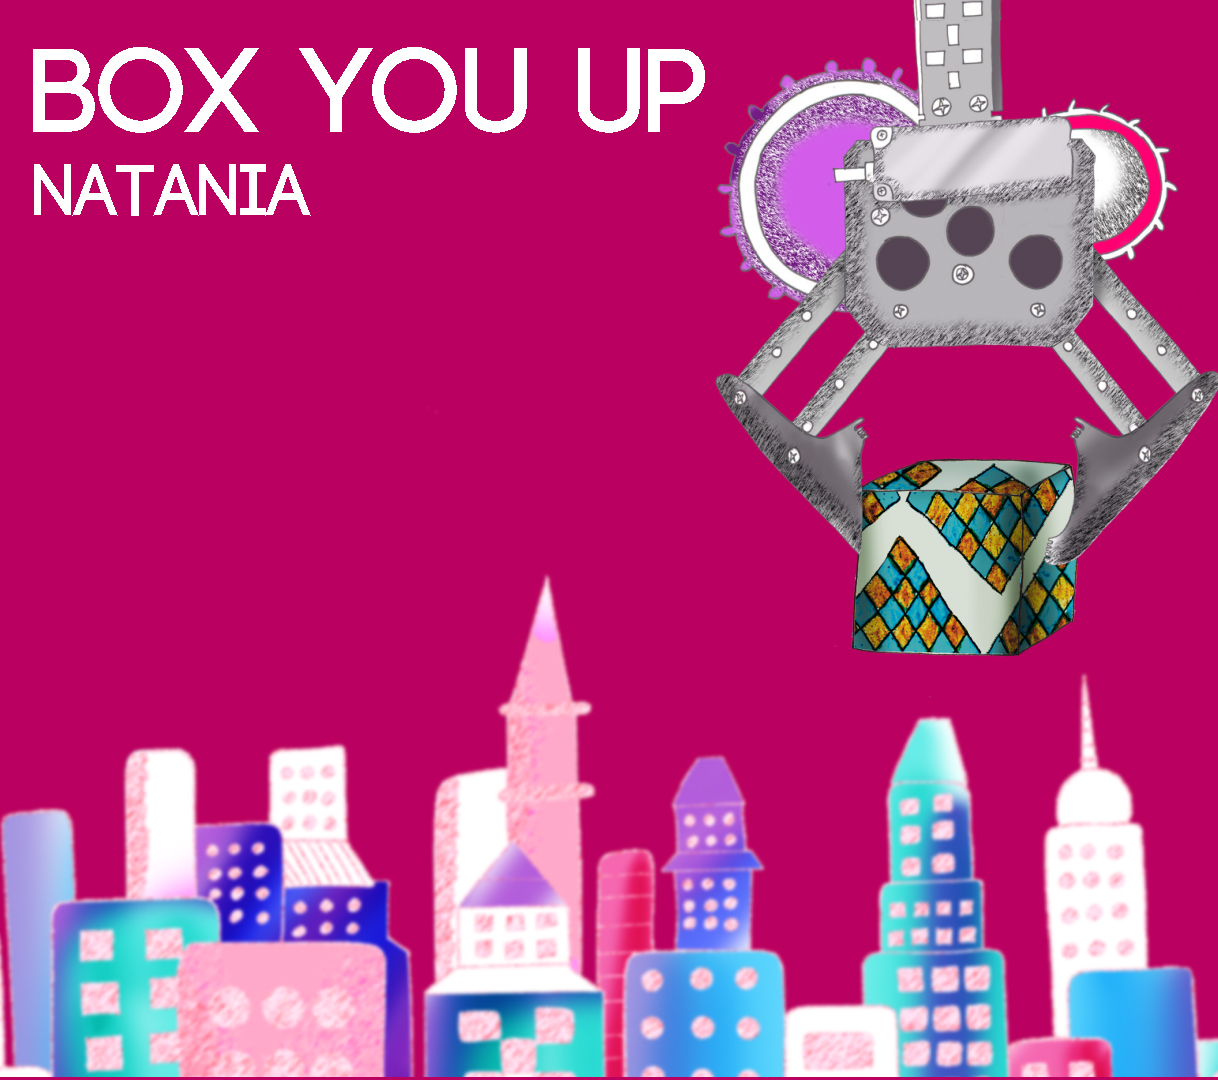 Box You Up Natania Lalwani  I've been going crazy lately with all these feelings I've got filled up inside me need to get them out need to get them out need to get rid of them without a doubt  Got me keys got my car I'm heading down to the UPS store Need some cardboard to fill my heart's up to the brim It's about to spill  Chorus I'm gonna box you up I'm gonna box you up Make sure they remember if undeliverable don't return to sender I'm gonna box you up I'm gonna box you up Maybe it'll ship across the sea maybe you'll find someone you'll meet oh oh oh oh oh oh oh  So she'll find the box and she'll open it up get so flustered she ties to a knot she knows these feelings won't work on anyone else and she doesn't even wanna settle for less  So she'll find you and you'll find here telling you the things you been wanting to hear you'l fall too and be happy and I'll be happy for you  Chorus  And yes you give me feelings they write about the movies the stories we read about  but if I don't tell you you'll never know and if you never know I'll never get hurt and if I never get hurt it'll be easy to let you go  Chorus